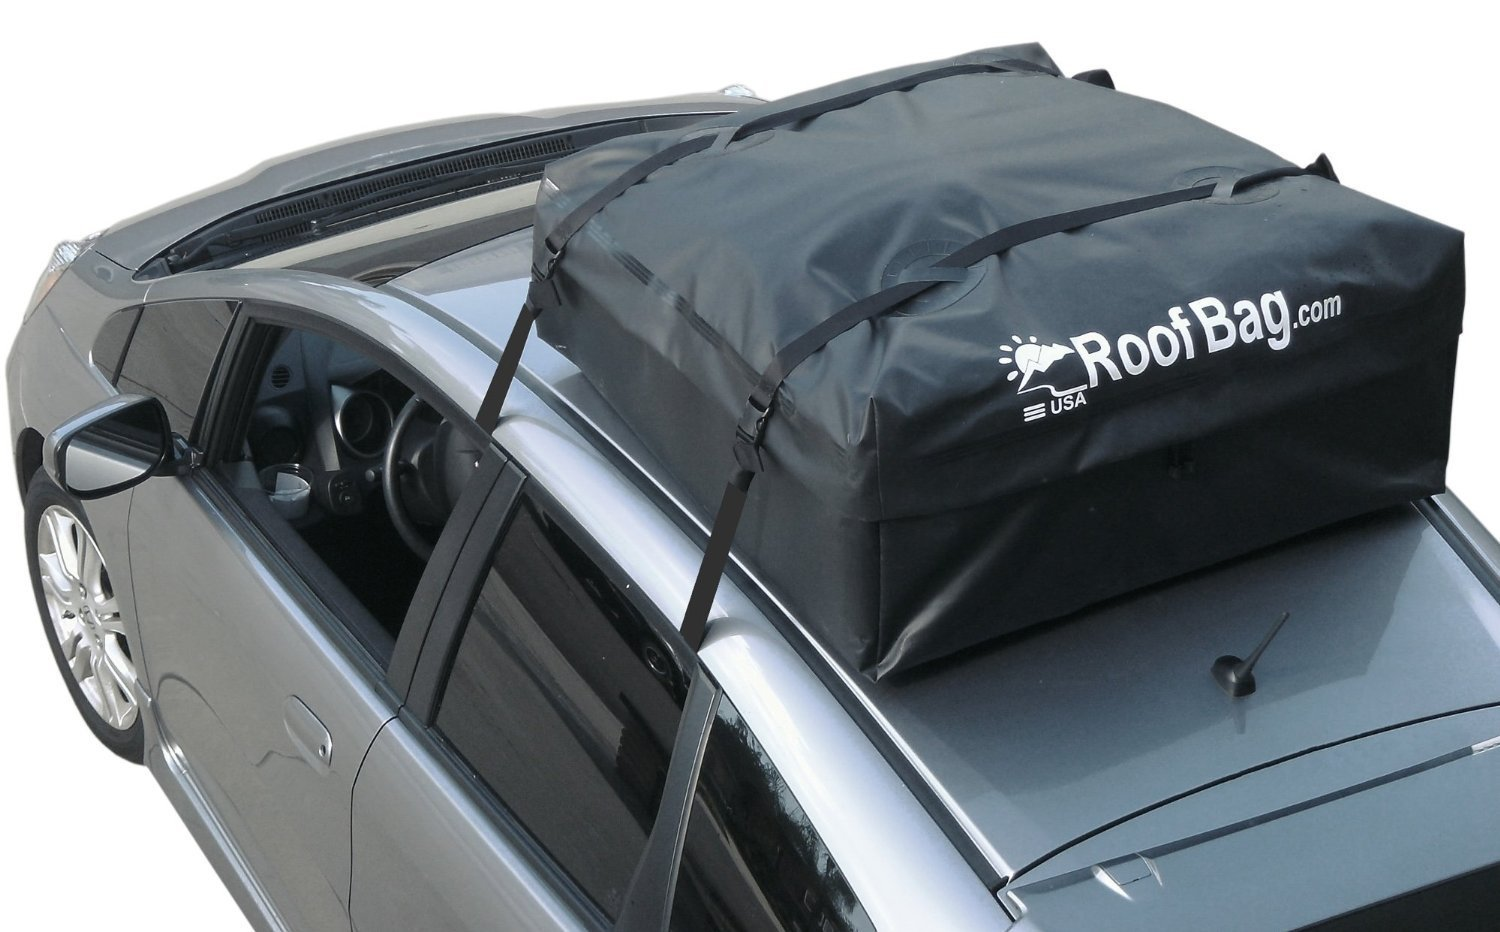 Amazon.com: RoofBag Cross Country 100% Waterproof Soft Car Top Carrier For  Any Car Van Or SUV   Made In The USA | 2 Year Warranty | Ships Today:  Automotive